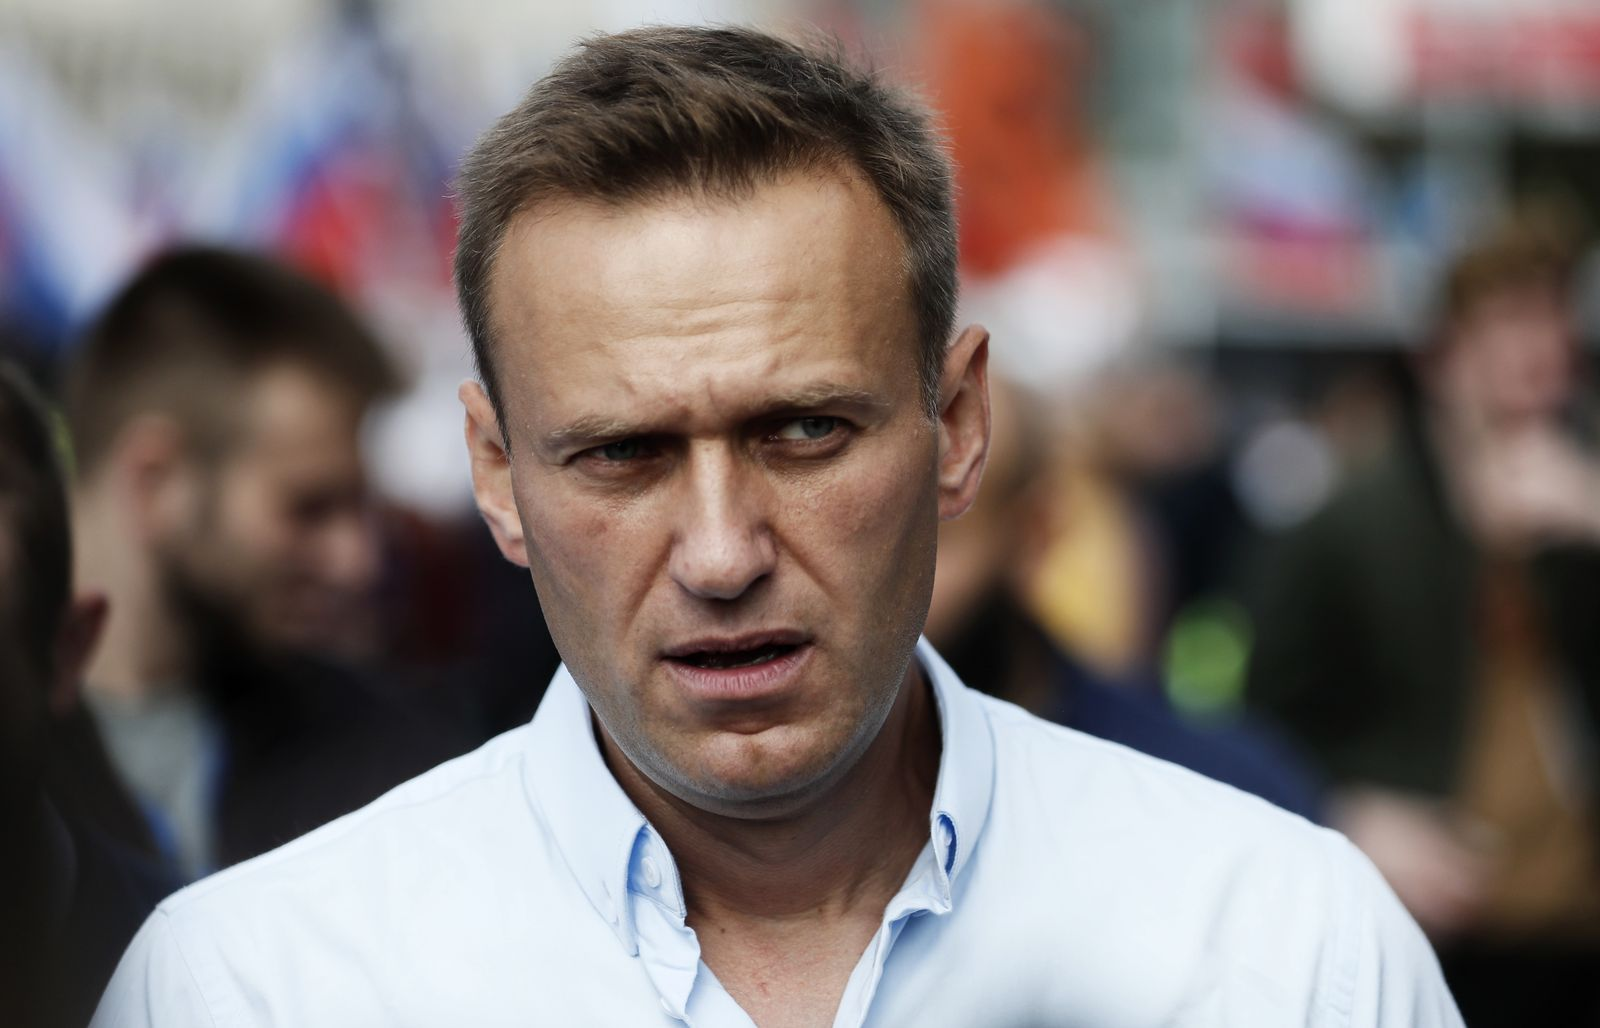 German government says 'unequivocal proof' found for Navalny pisoning, Moscow, Russian Federation - 20 Jul 2019